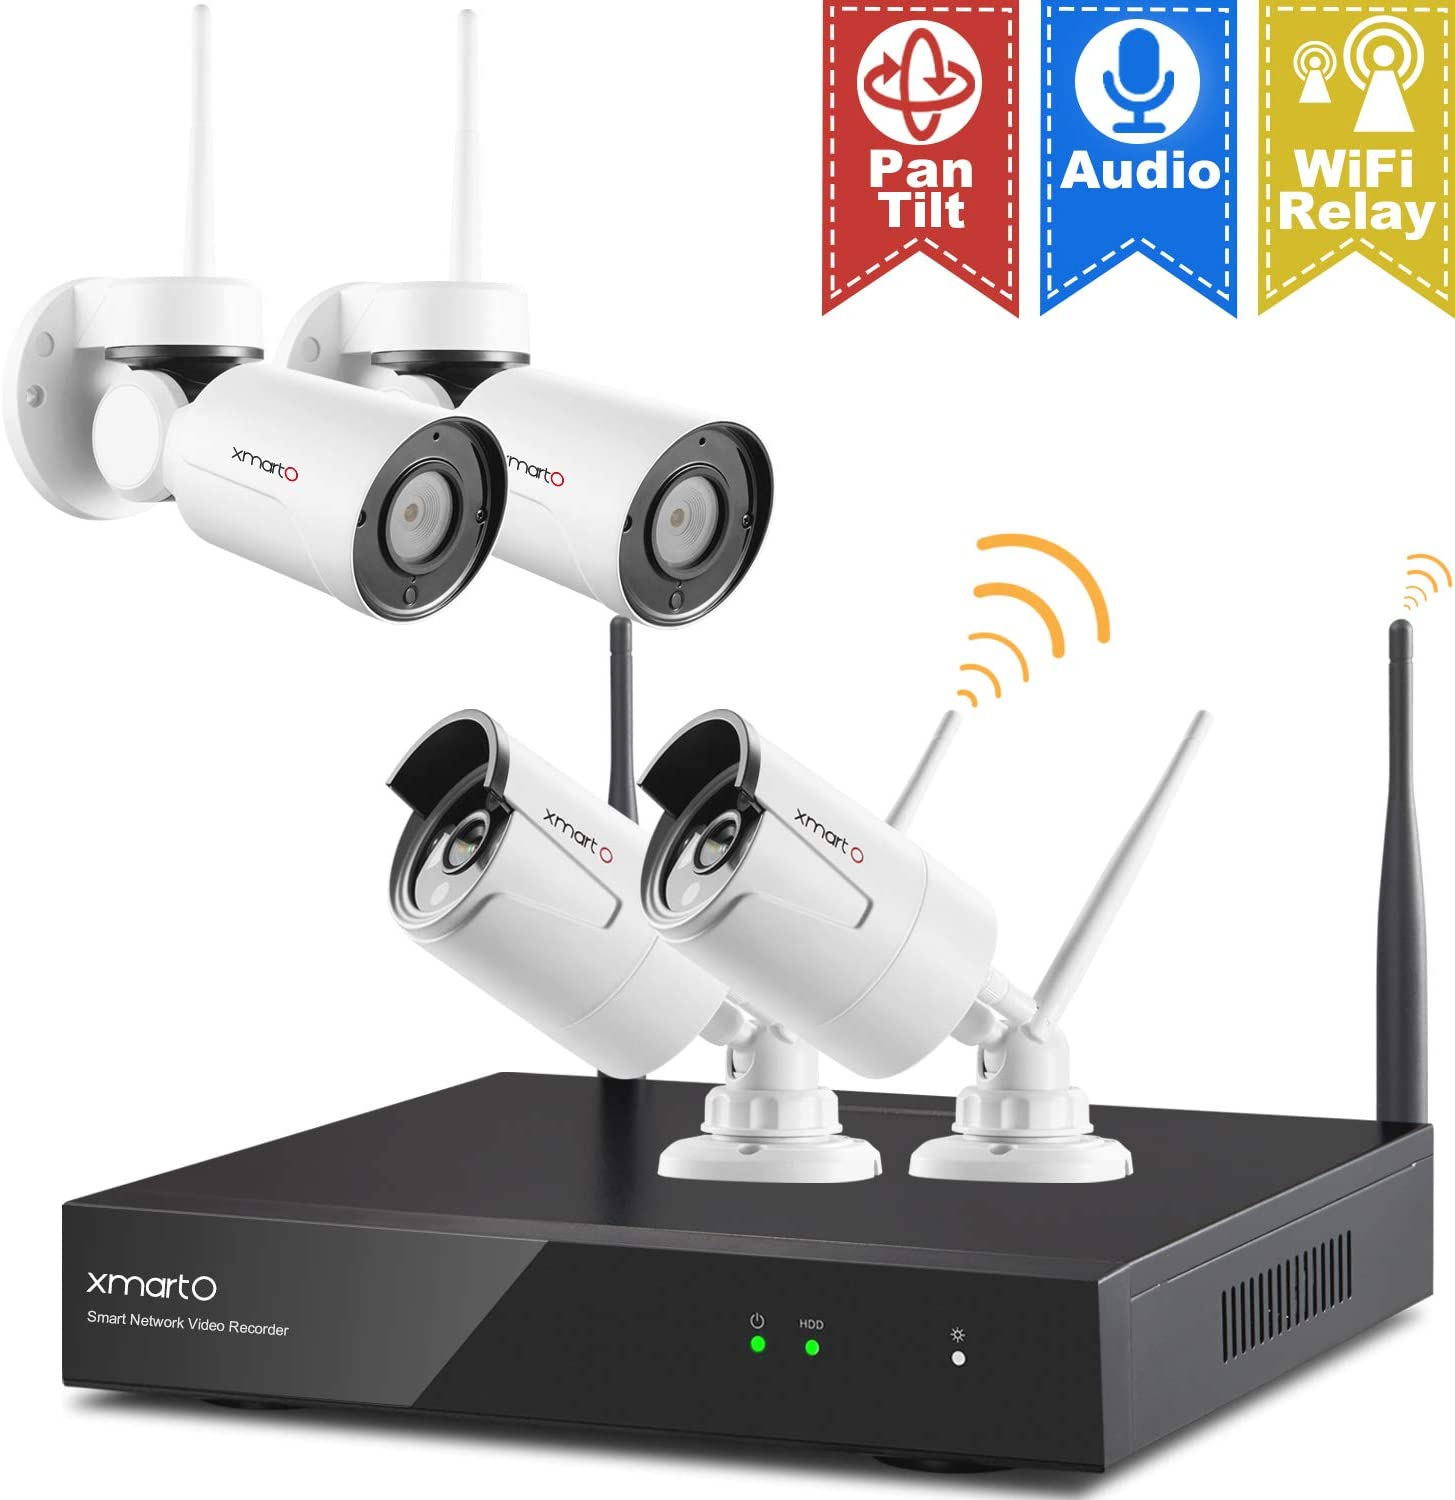 Pan Tilt Expandable xmartO Hybrid Wireless Security Camera System with 8CH NVR, 2Pcs Wireless PT Cameras Built-in Audio , 2Pcs Fixed-Angle WiFi Bullet Cameras Audio Compatible , No HDD